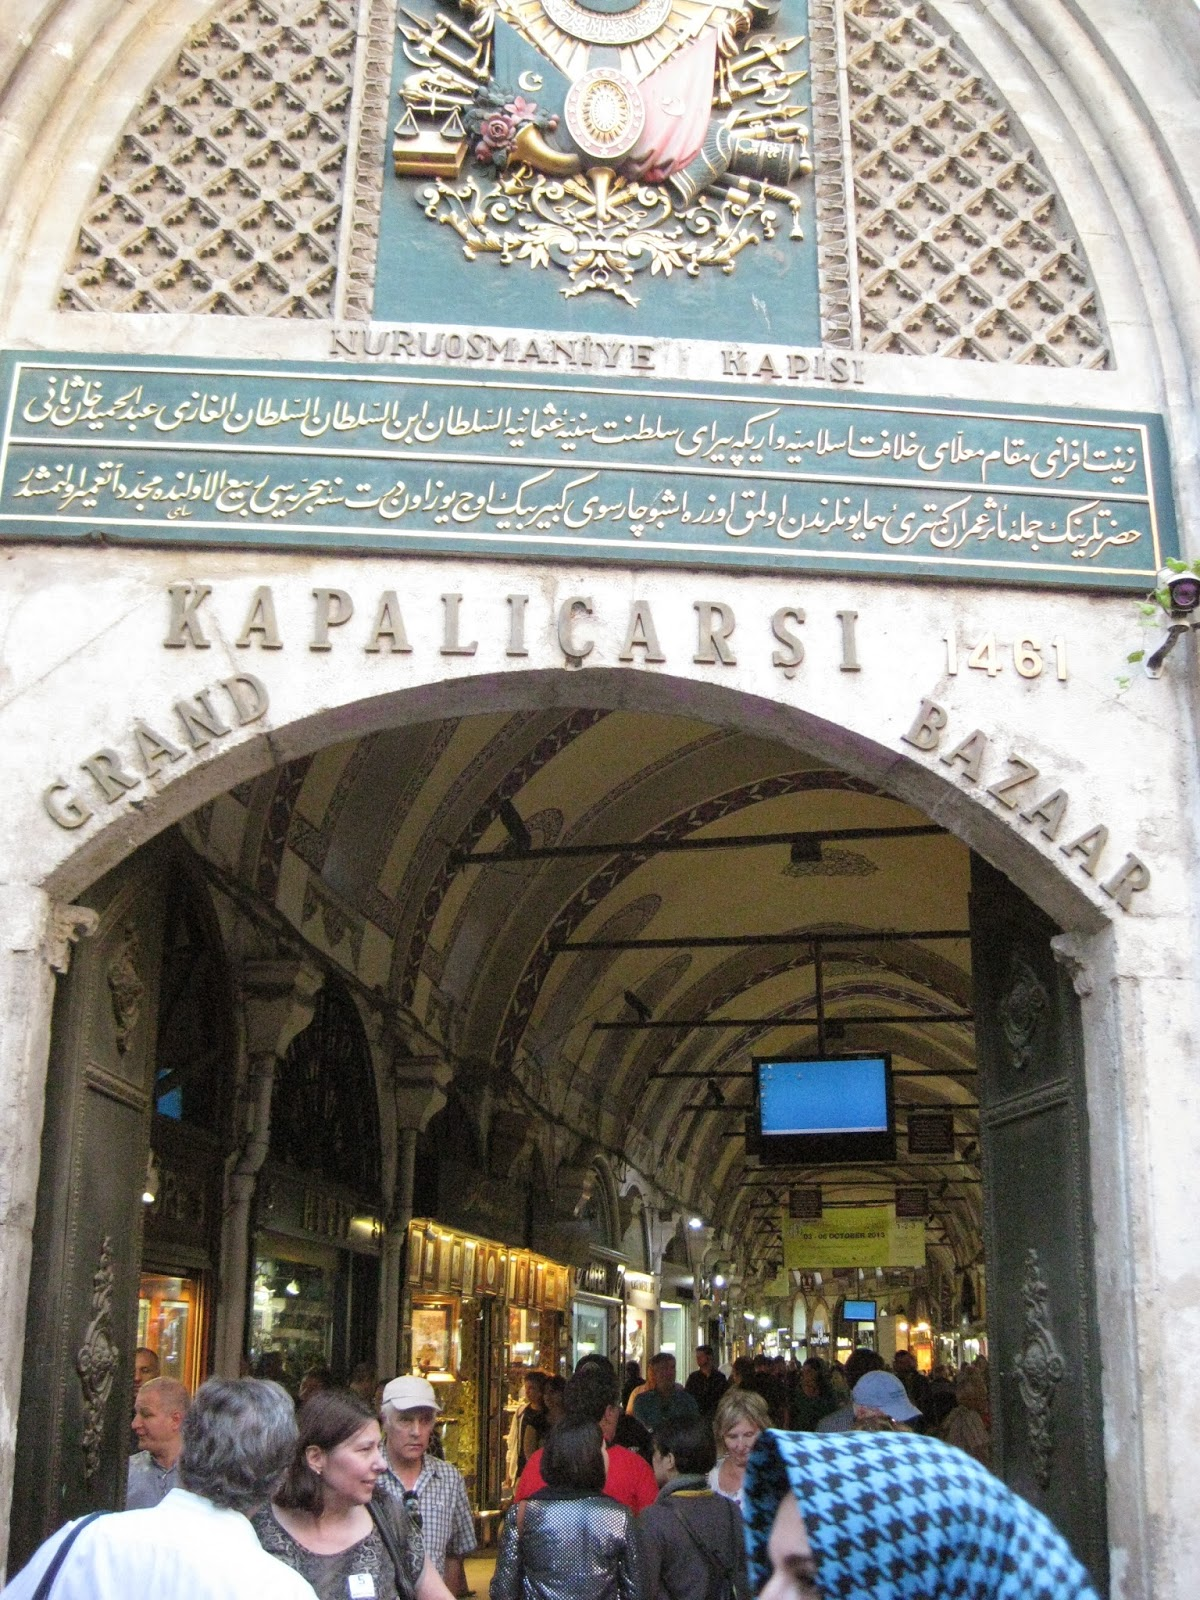 Istanbul - Entrance to the Grand Bazaar